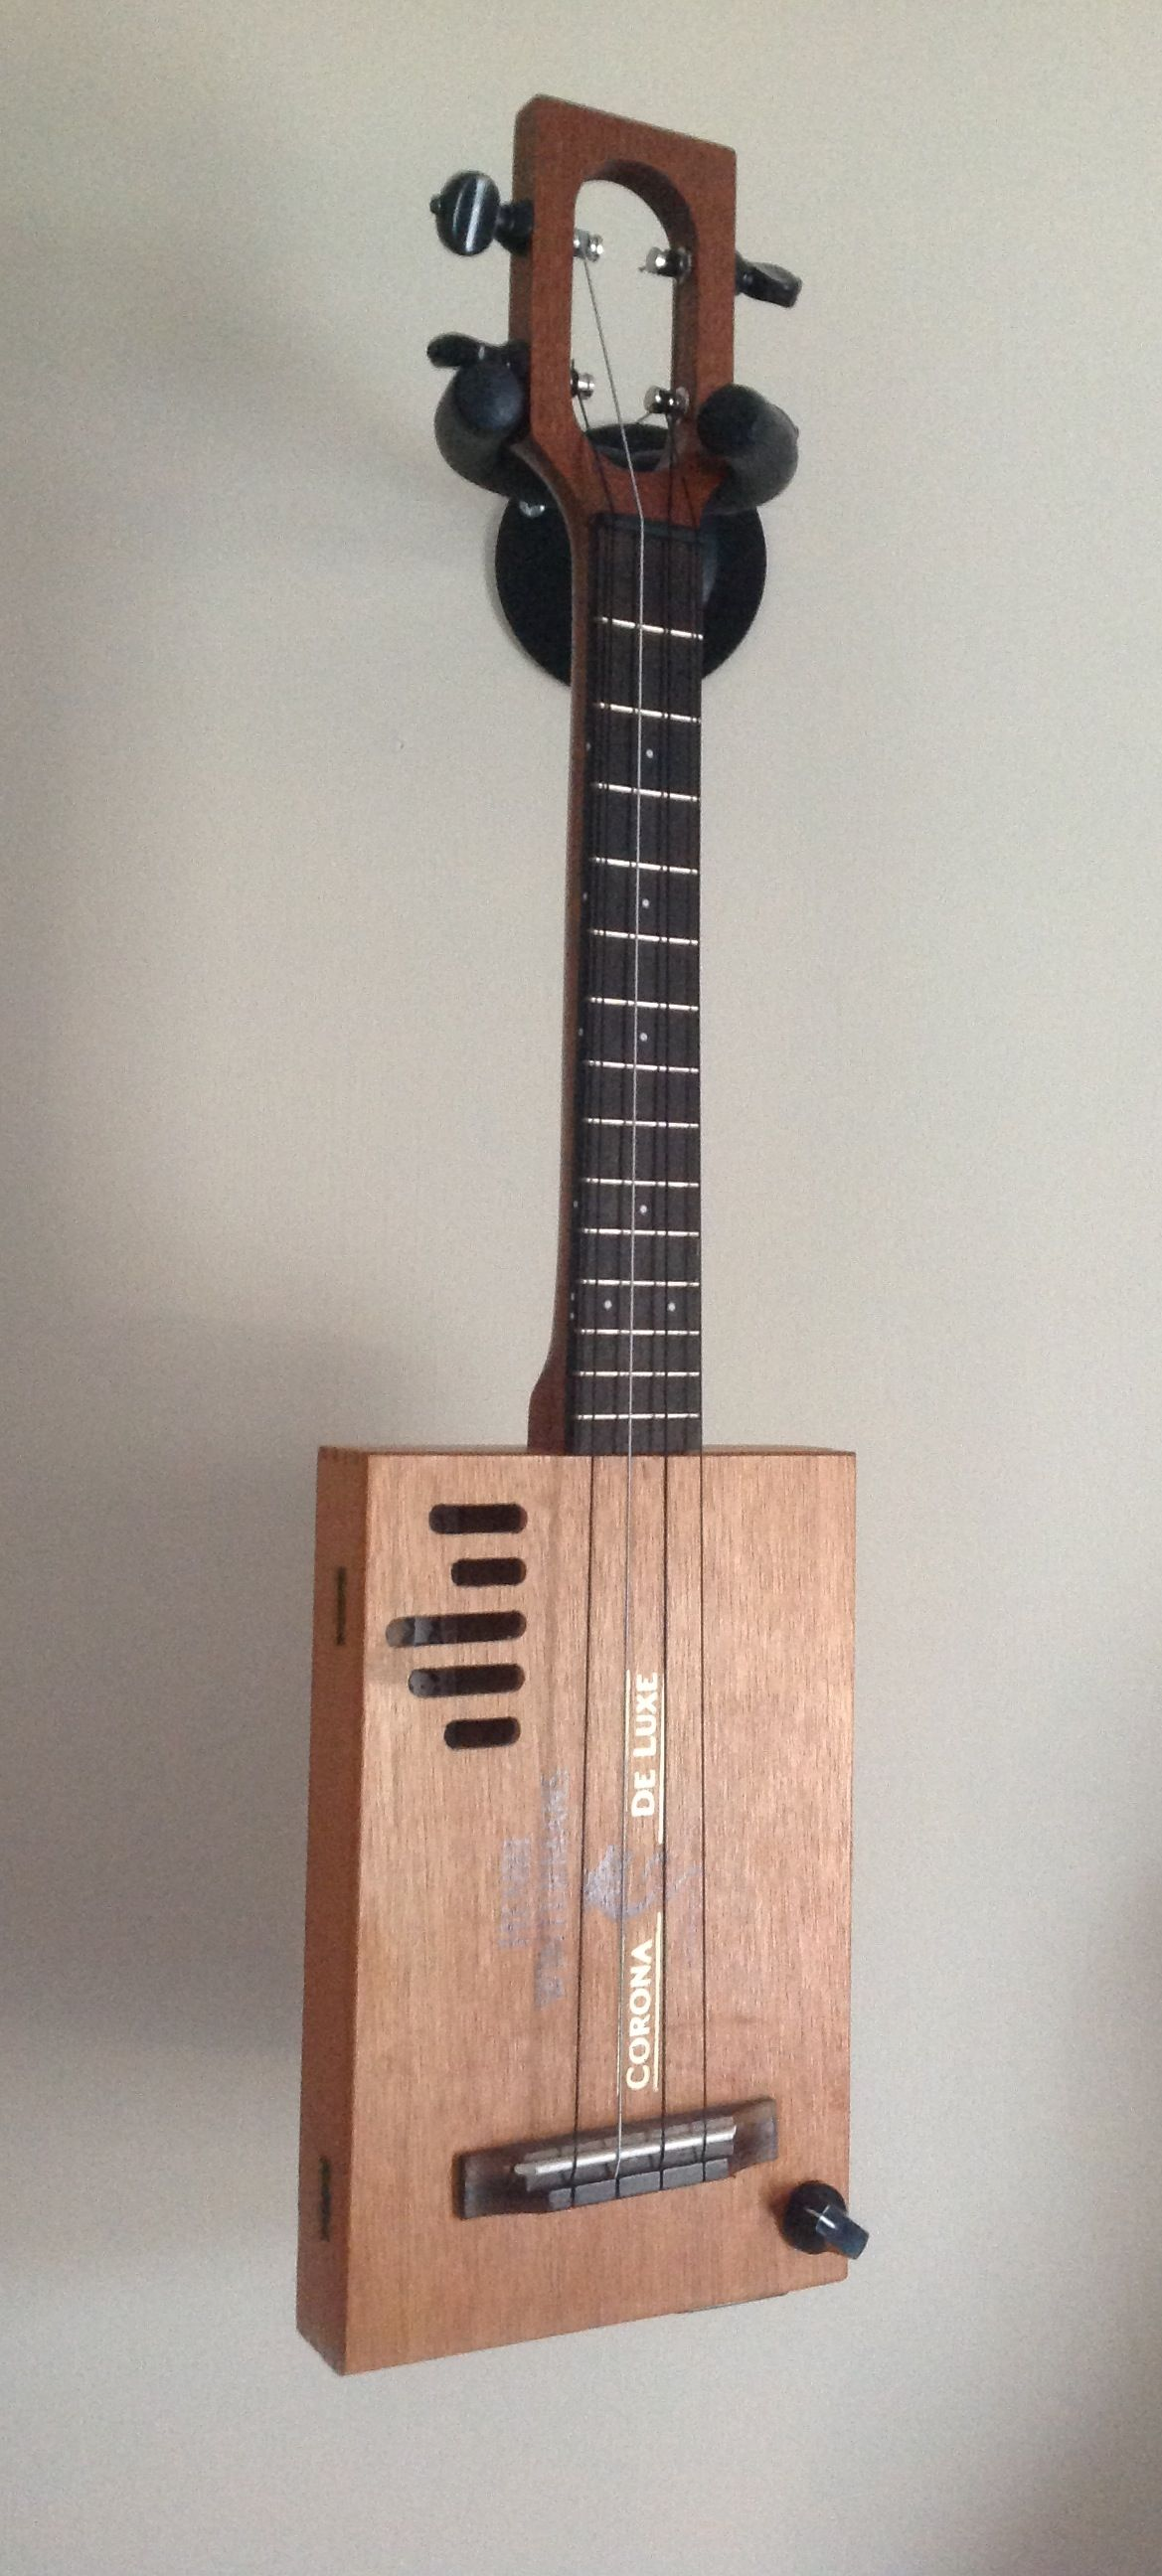 My beautiful custom made cigar box ukulele. Made for me by Chickenbone John. And it sounds as good as it looks!!!